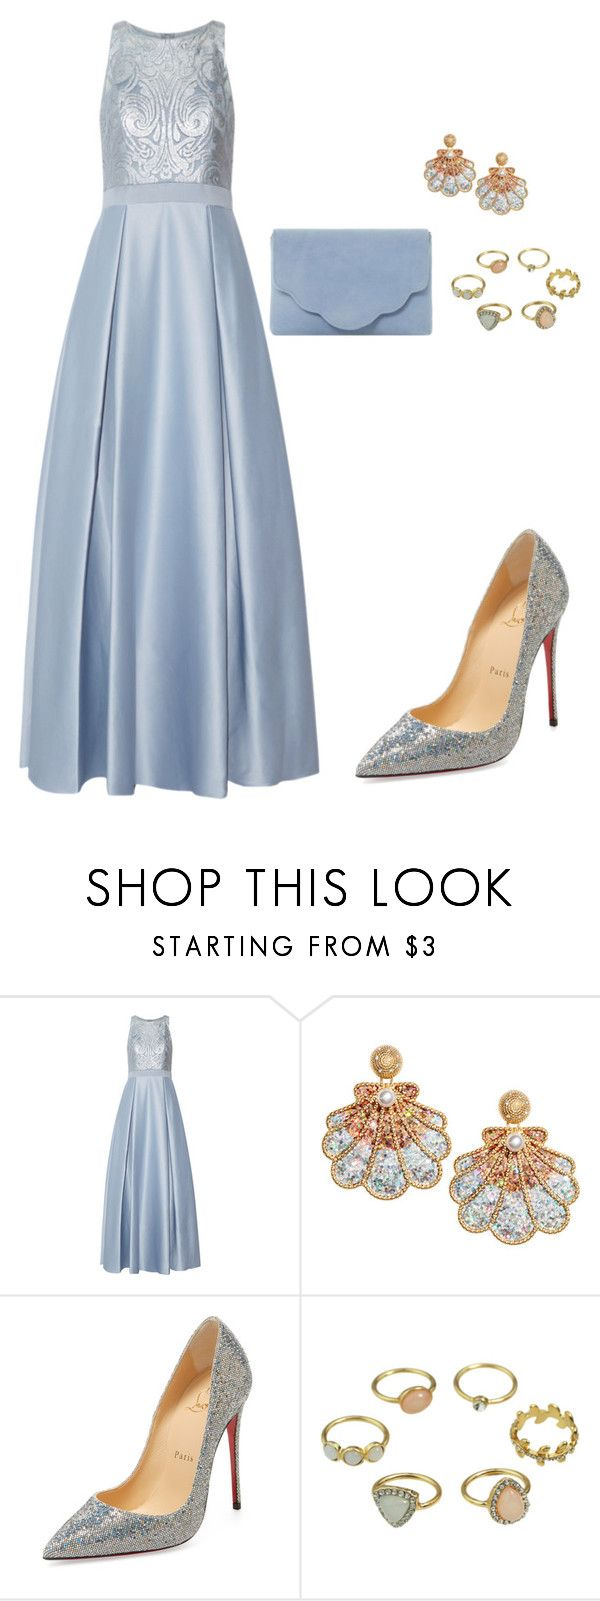 """Blanche"" by saretasareta on Polyvore featuring Badgley Mischka, Christian Louboutin and Dune"